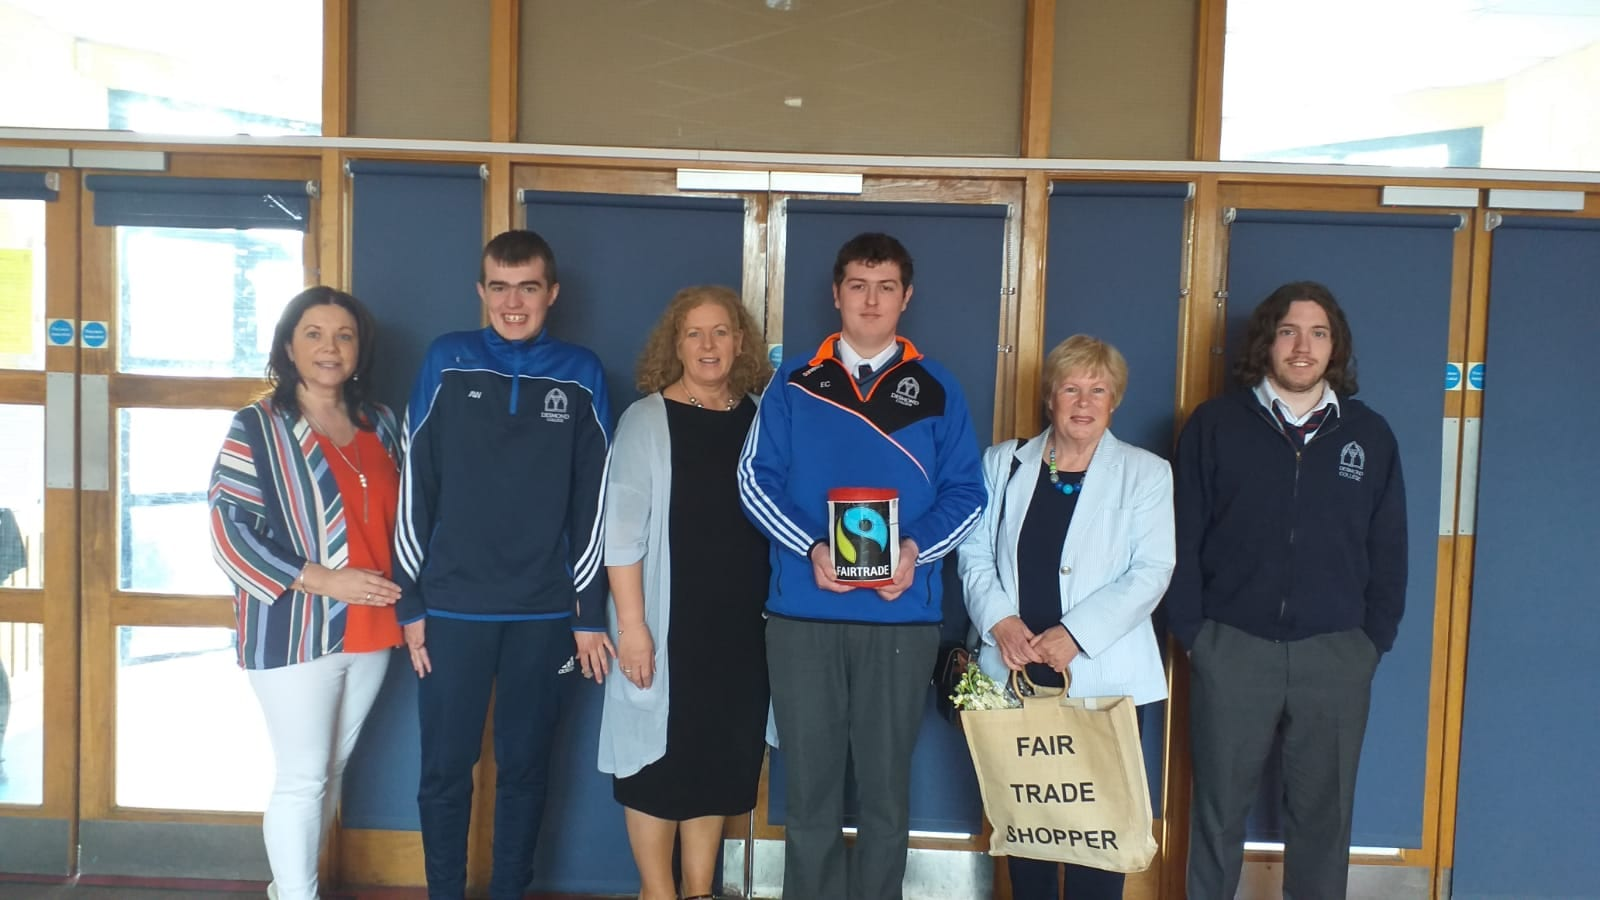 Ms Margaret O'Connor, Alan Wallace, Principal Ms Vourneen Gavin-Barry, Evan Condon, Dolores O'Meara (Chairperson of Limerick Fairtrade) and Kalon O'Brien